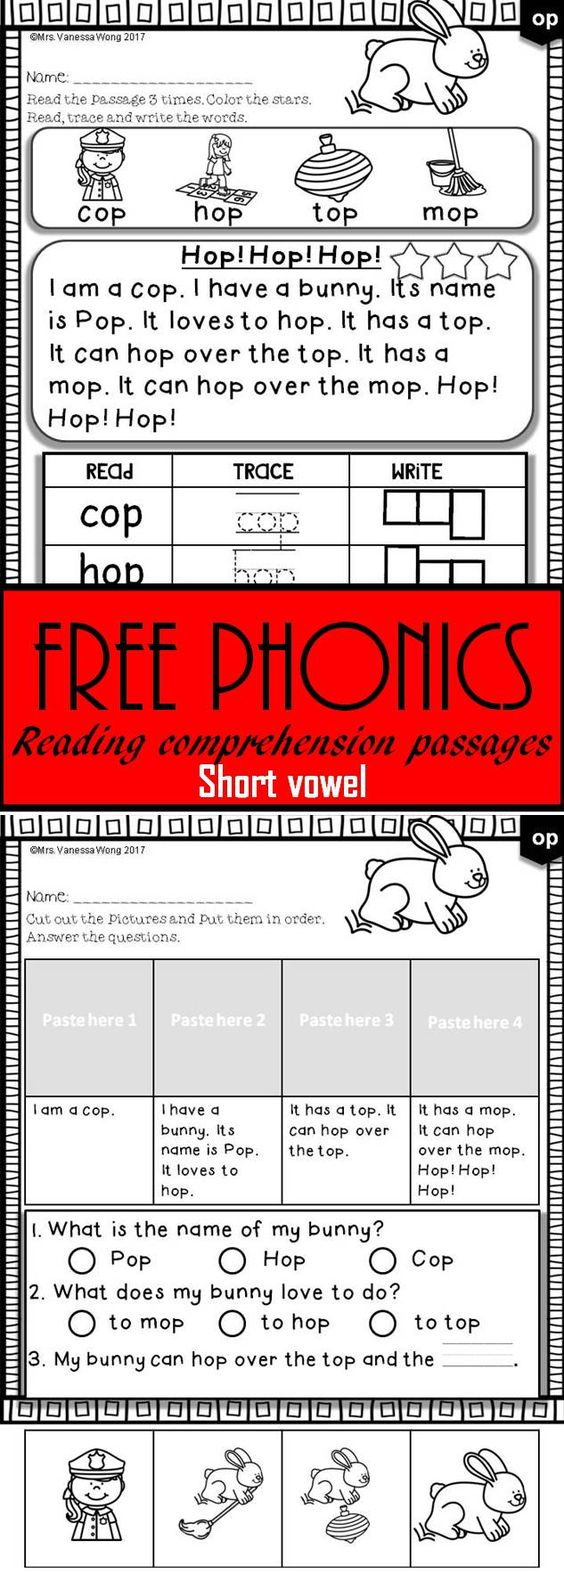 Free Phonics Activities And Passages For Vocabulary Fluency And Reading Comprehension And Story Sequence Shor Phonics Reading Reading Comprehension Phonics [ 1573 x 564 Pixel ]